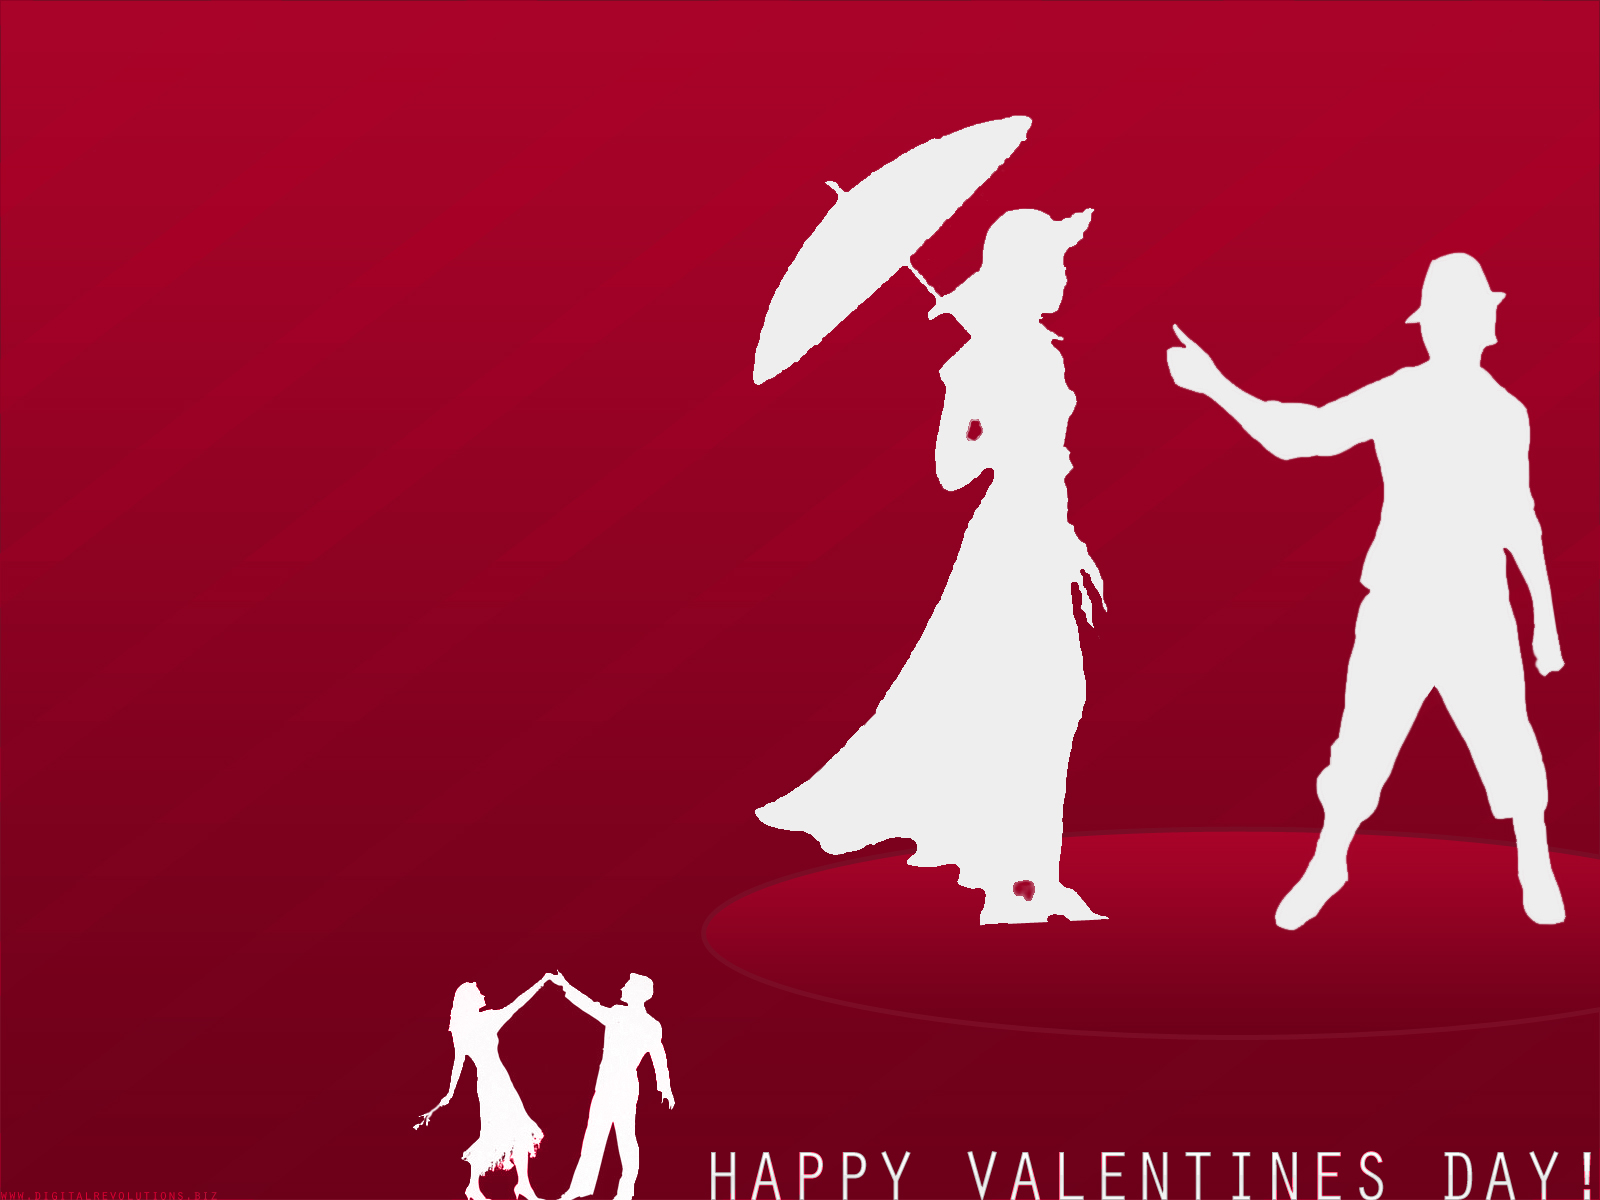 valentine's day wallpaper | best hd wallpapers, new wallpapers, pc